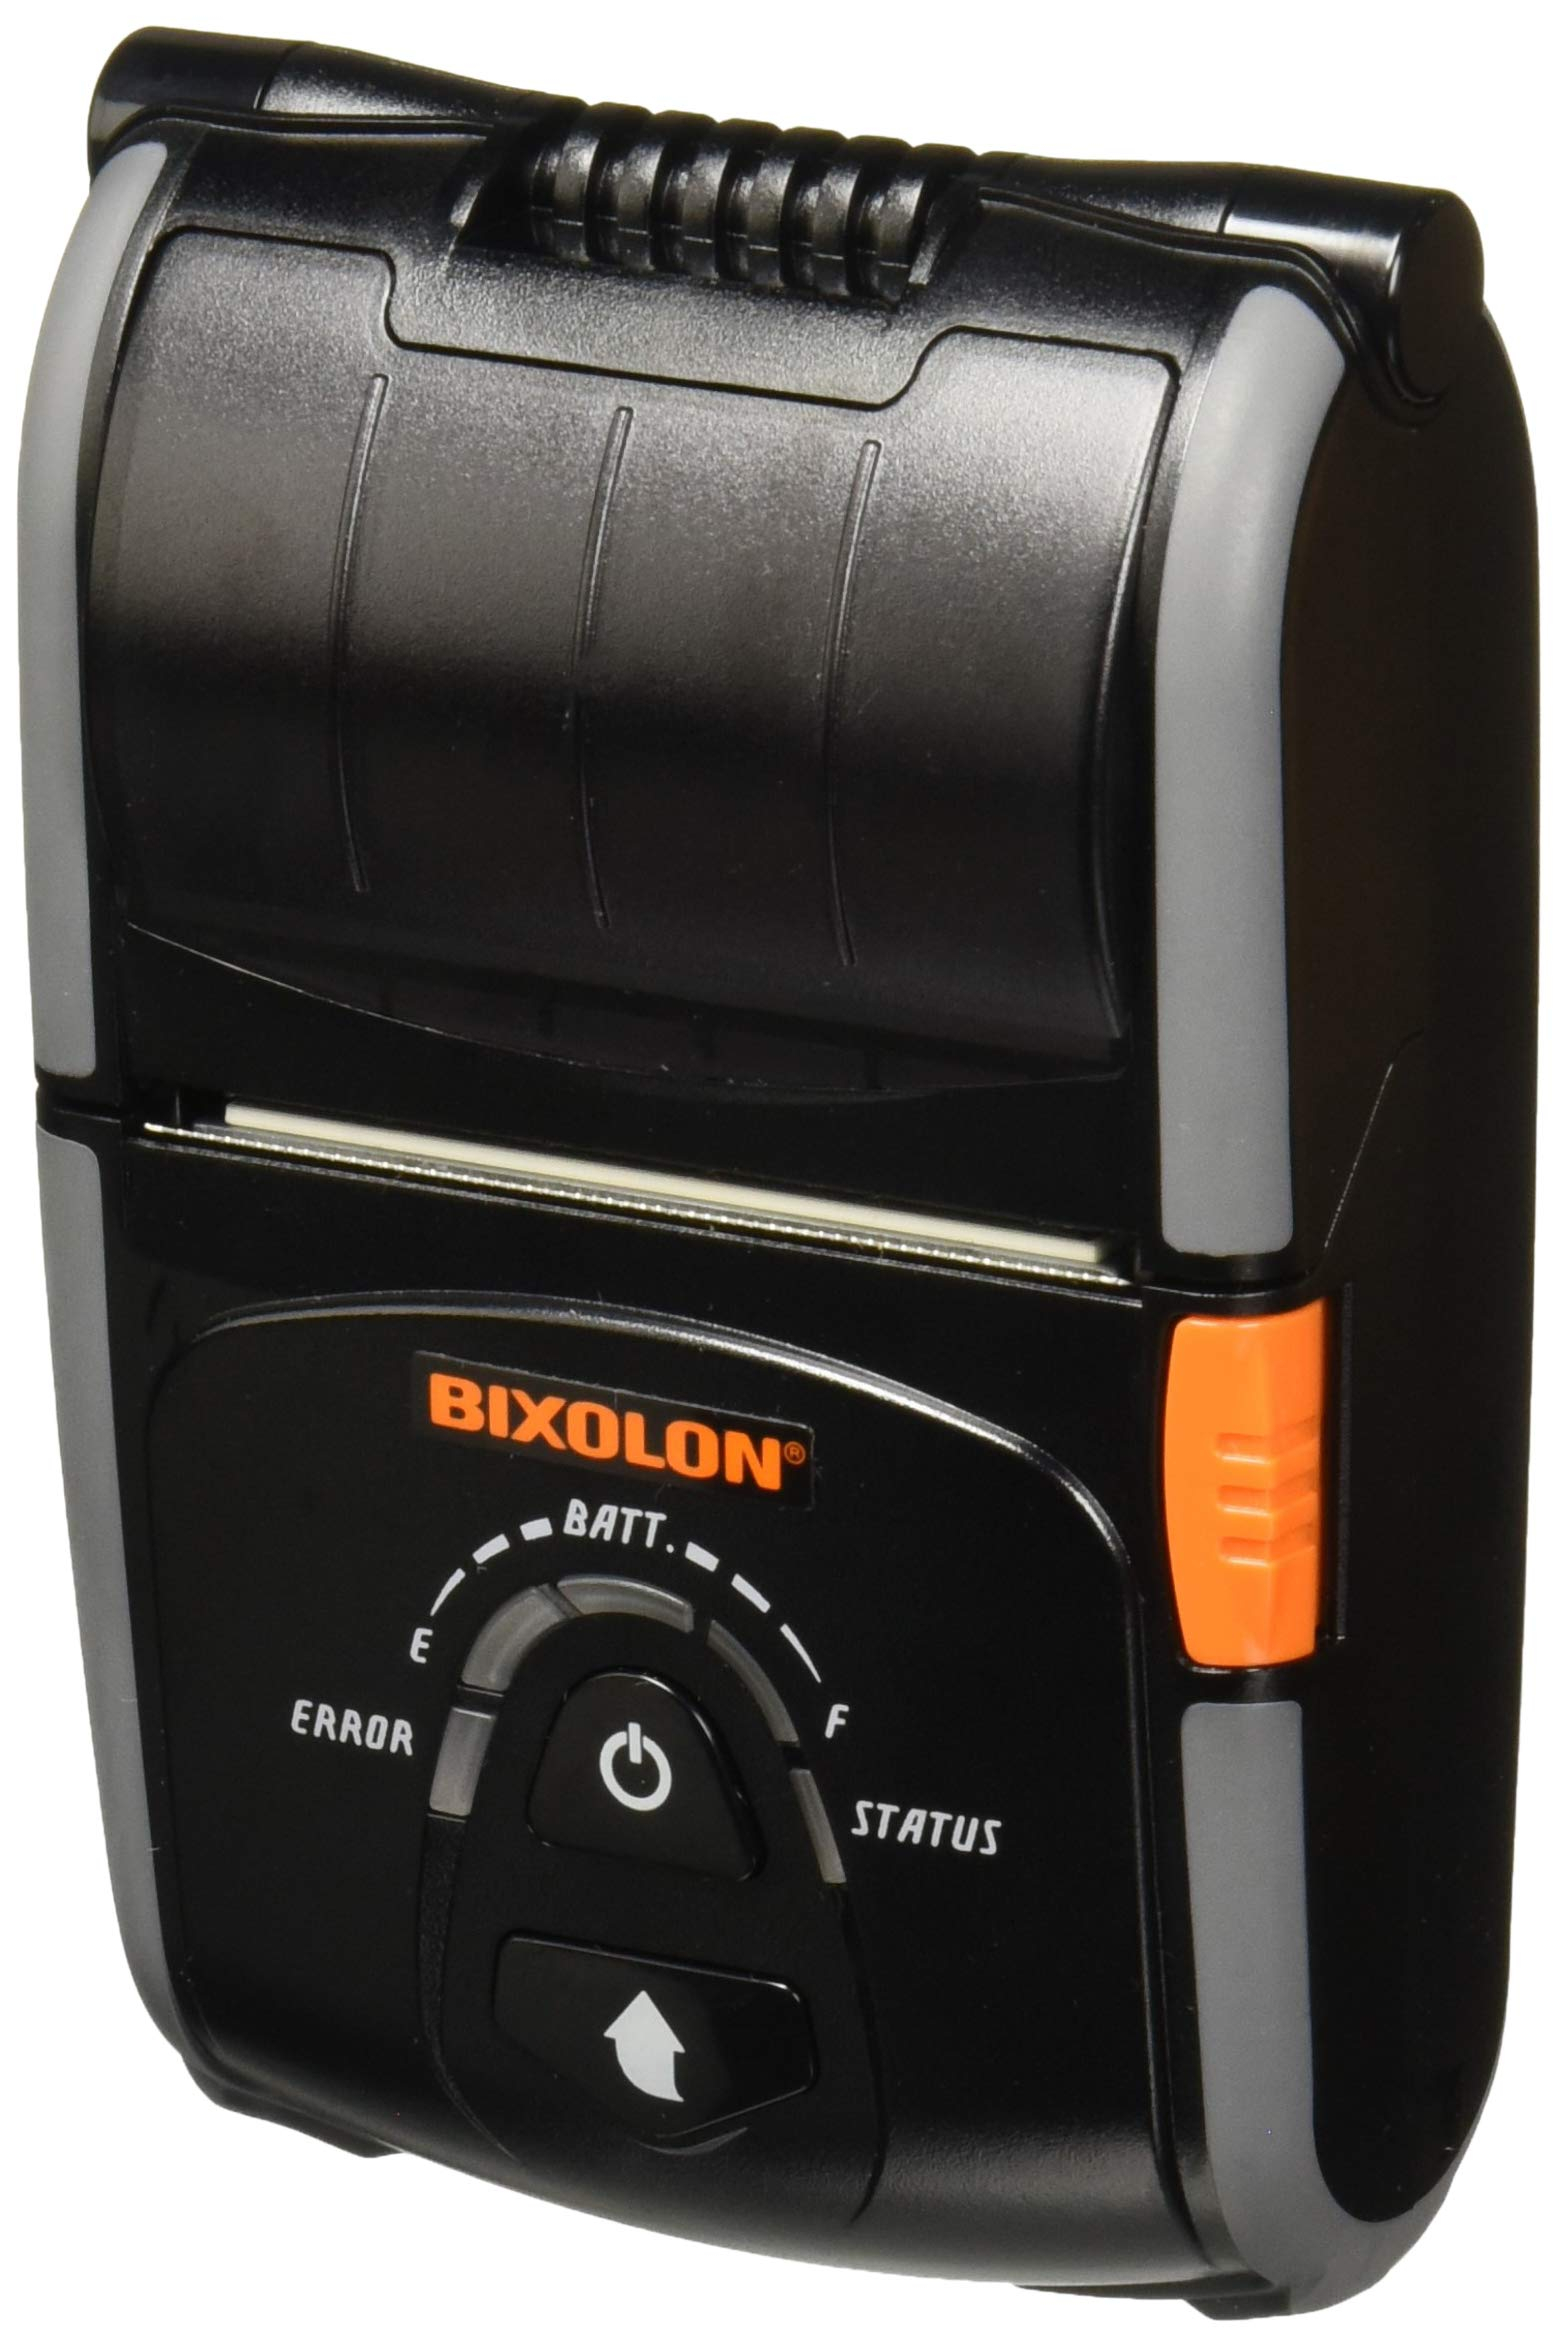 Bixolon SPP-R200IIIiK Mobile Thermal Printer, Replaces spp-r200iibk/ink, 2'' by BIXOLON